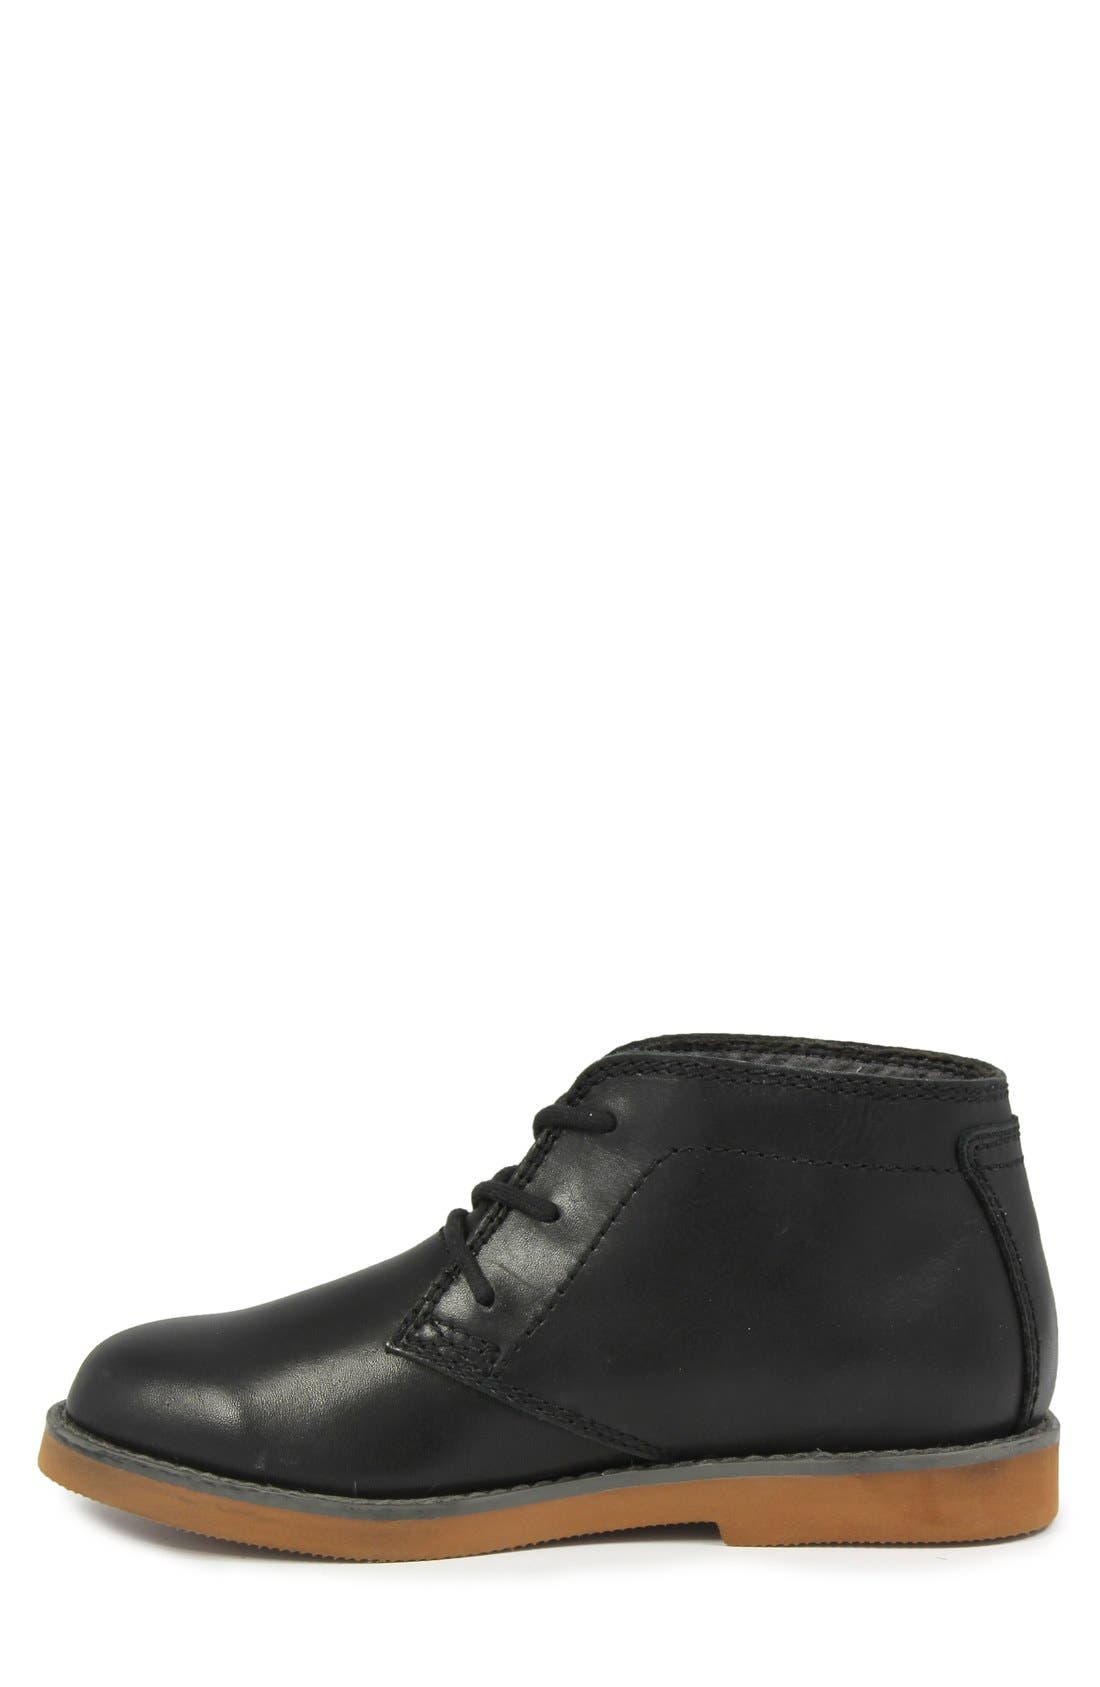 'Bucktown' Chukka Boot,                             Alternate thumbnail 22, color,